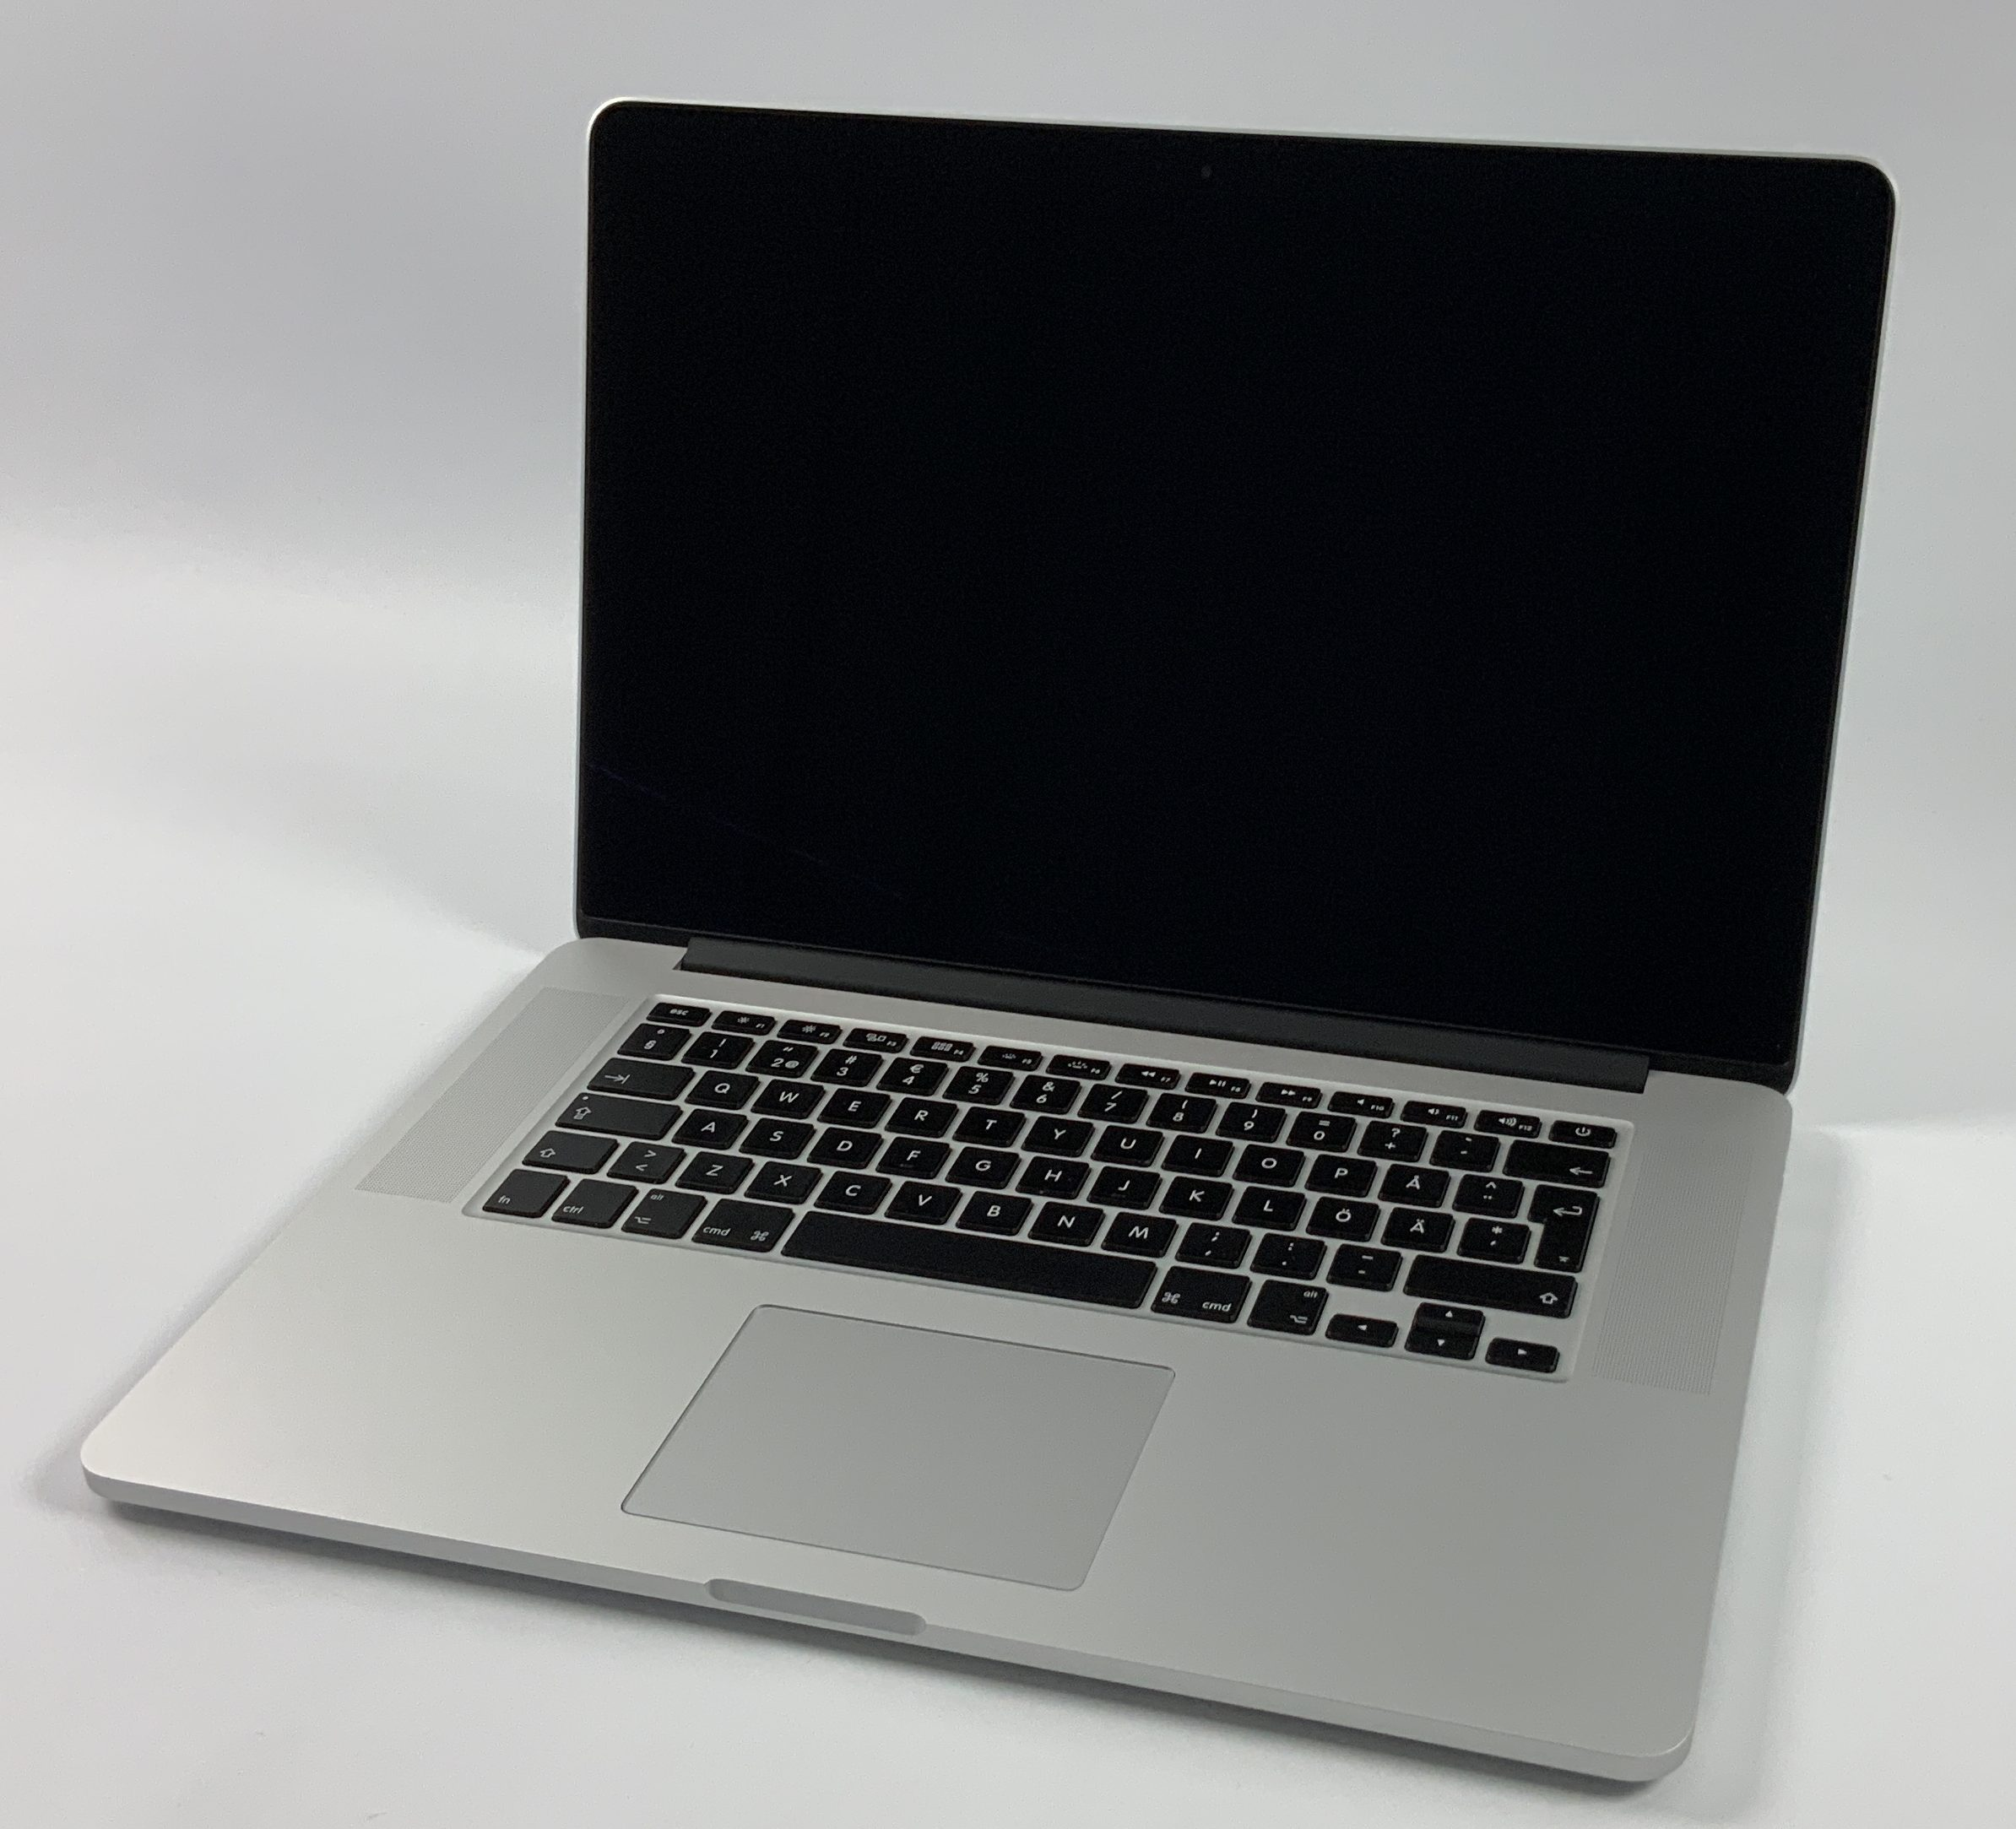 "MacBook Pro Retina 15"" Mid 2015 (Intel Quad-Core i7 2.2 GHz 16 GB RAM 256 GB SSD), Intel Quad-Core i7 2.2 GHz, 16 GB RAM, 256 GB SSD, immagine 1"